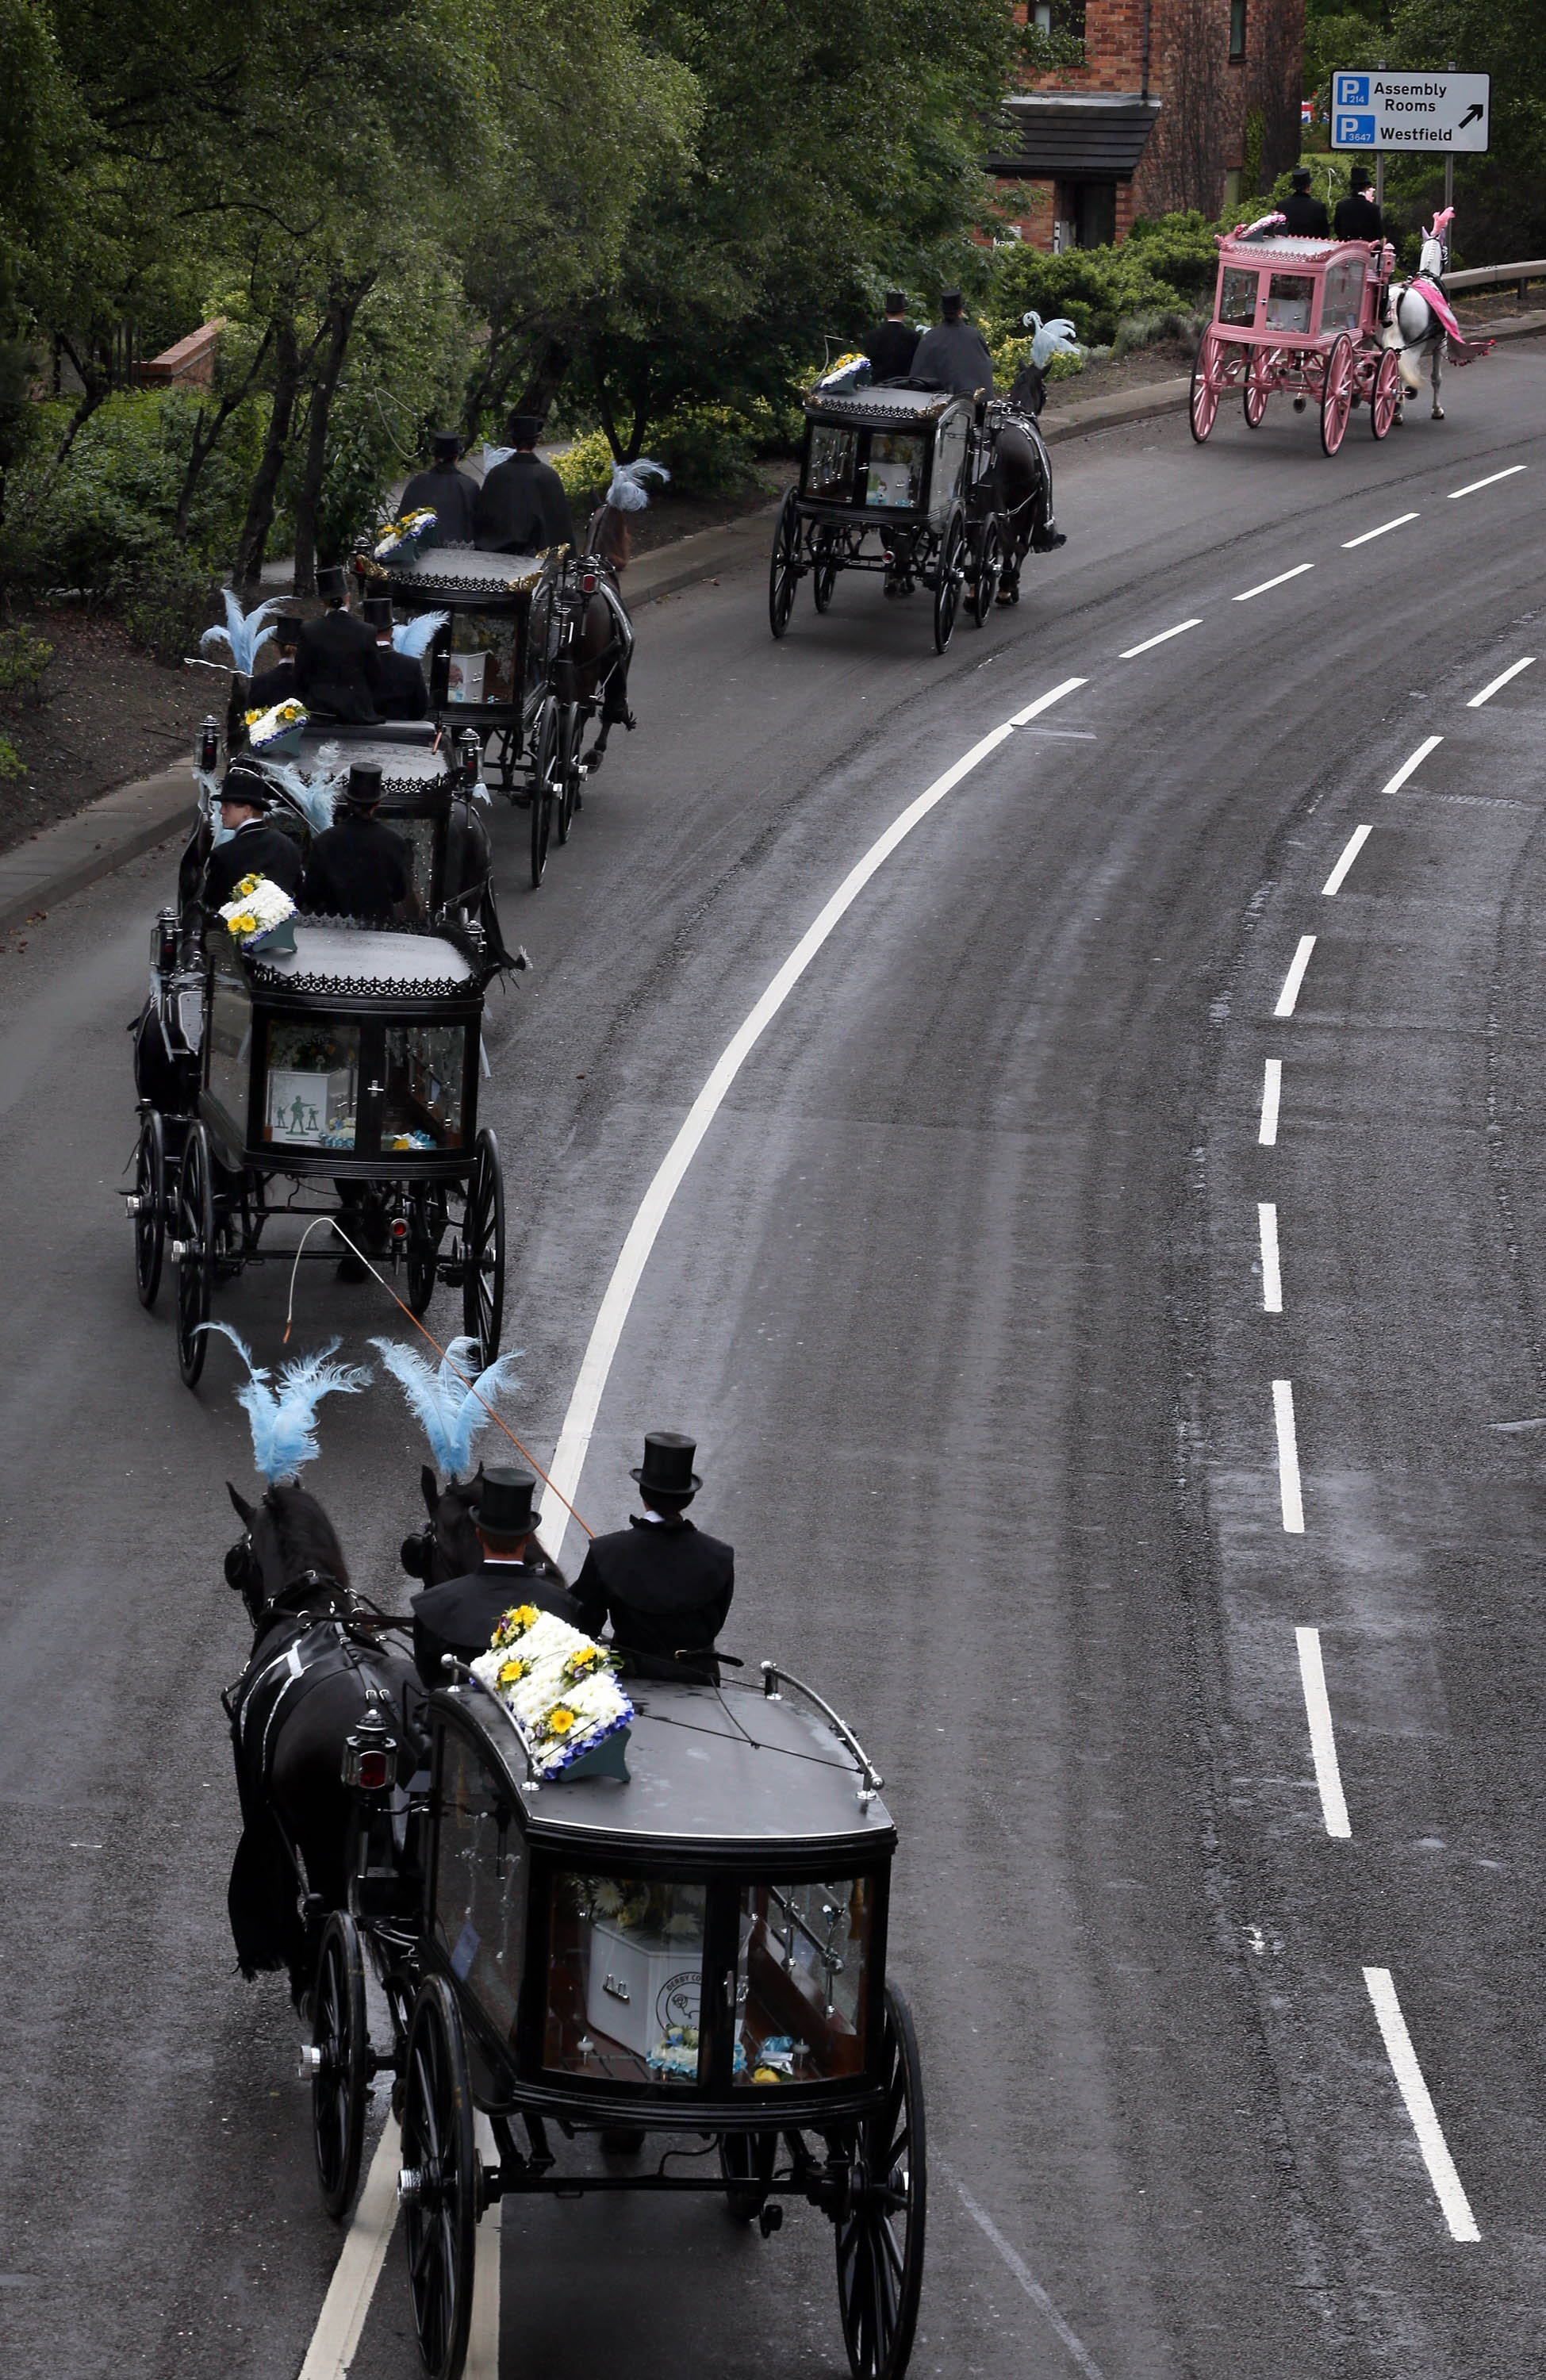 Horse-drawn hearses travel to St Mary's Church carrying the coffins of the six Philpott children on June 22, 2012, in Derby, England (Source: Peter Macdiarmid/Getty Images)